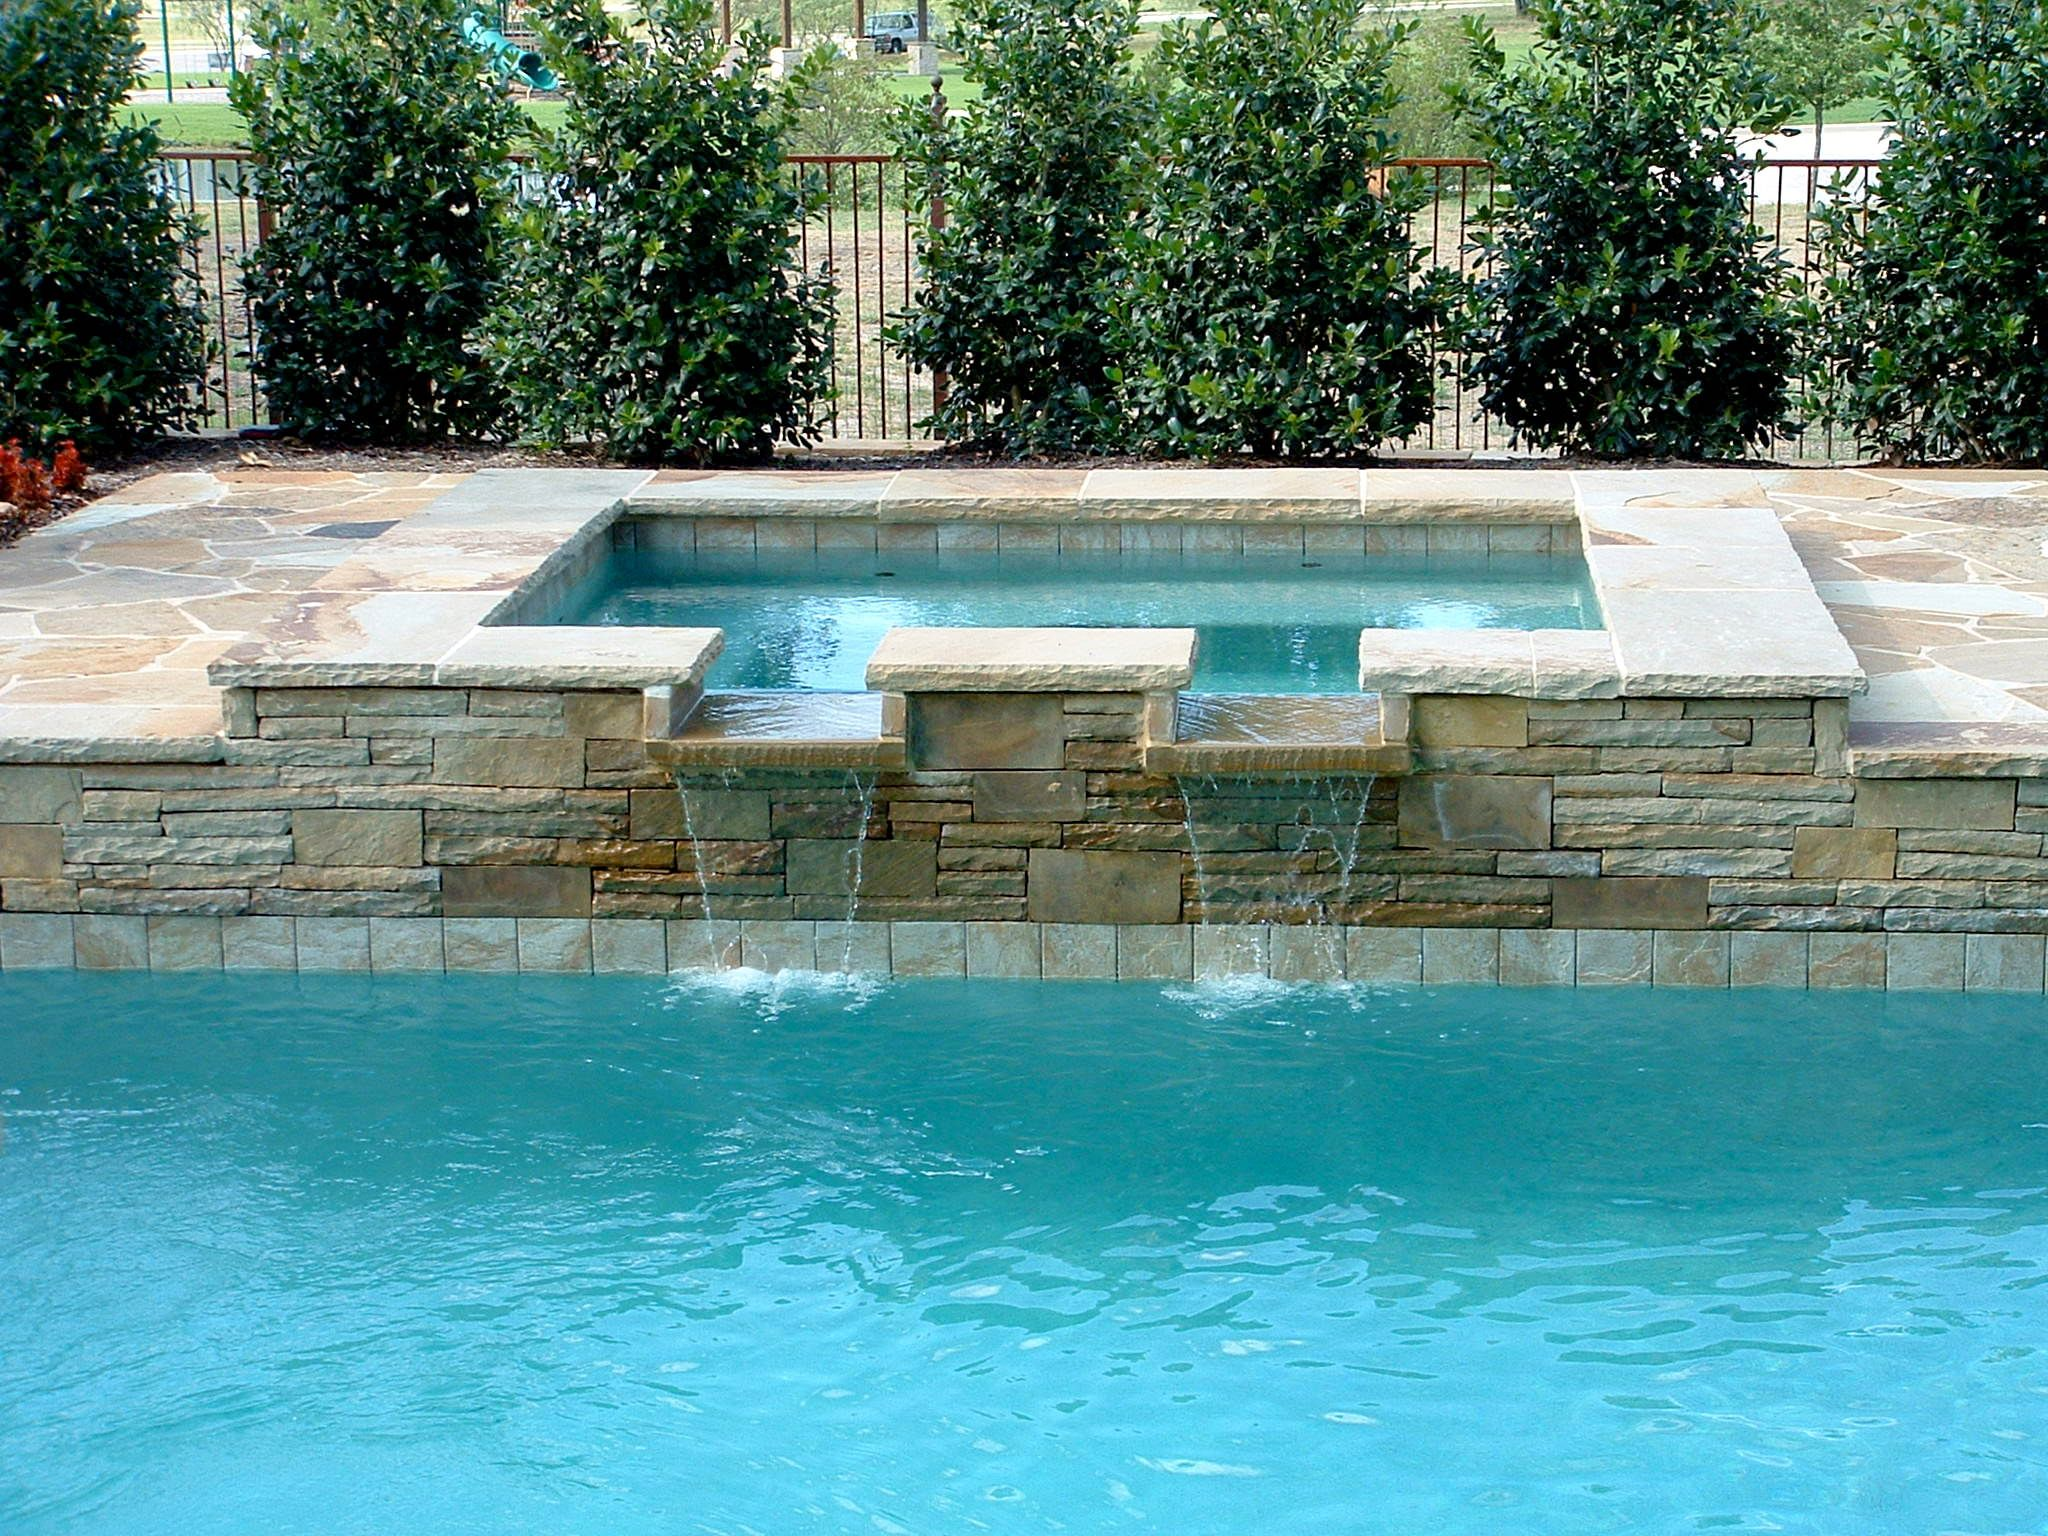 Formal swimming pool with raised spa rosetta fountains fort worth texas pool ideas for Swimming pool builders fort worth